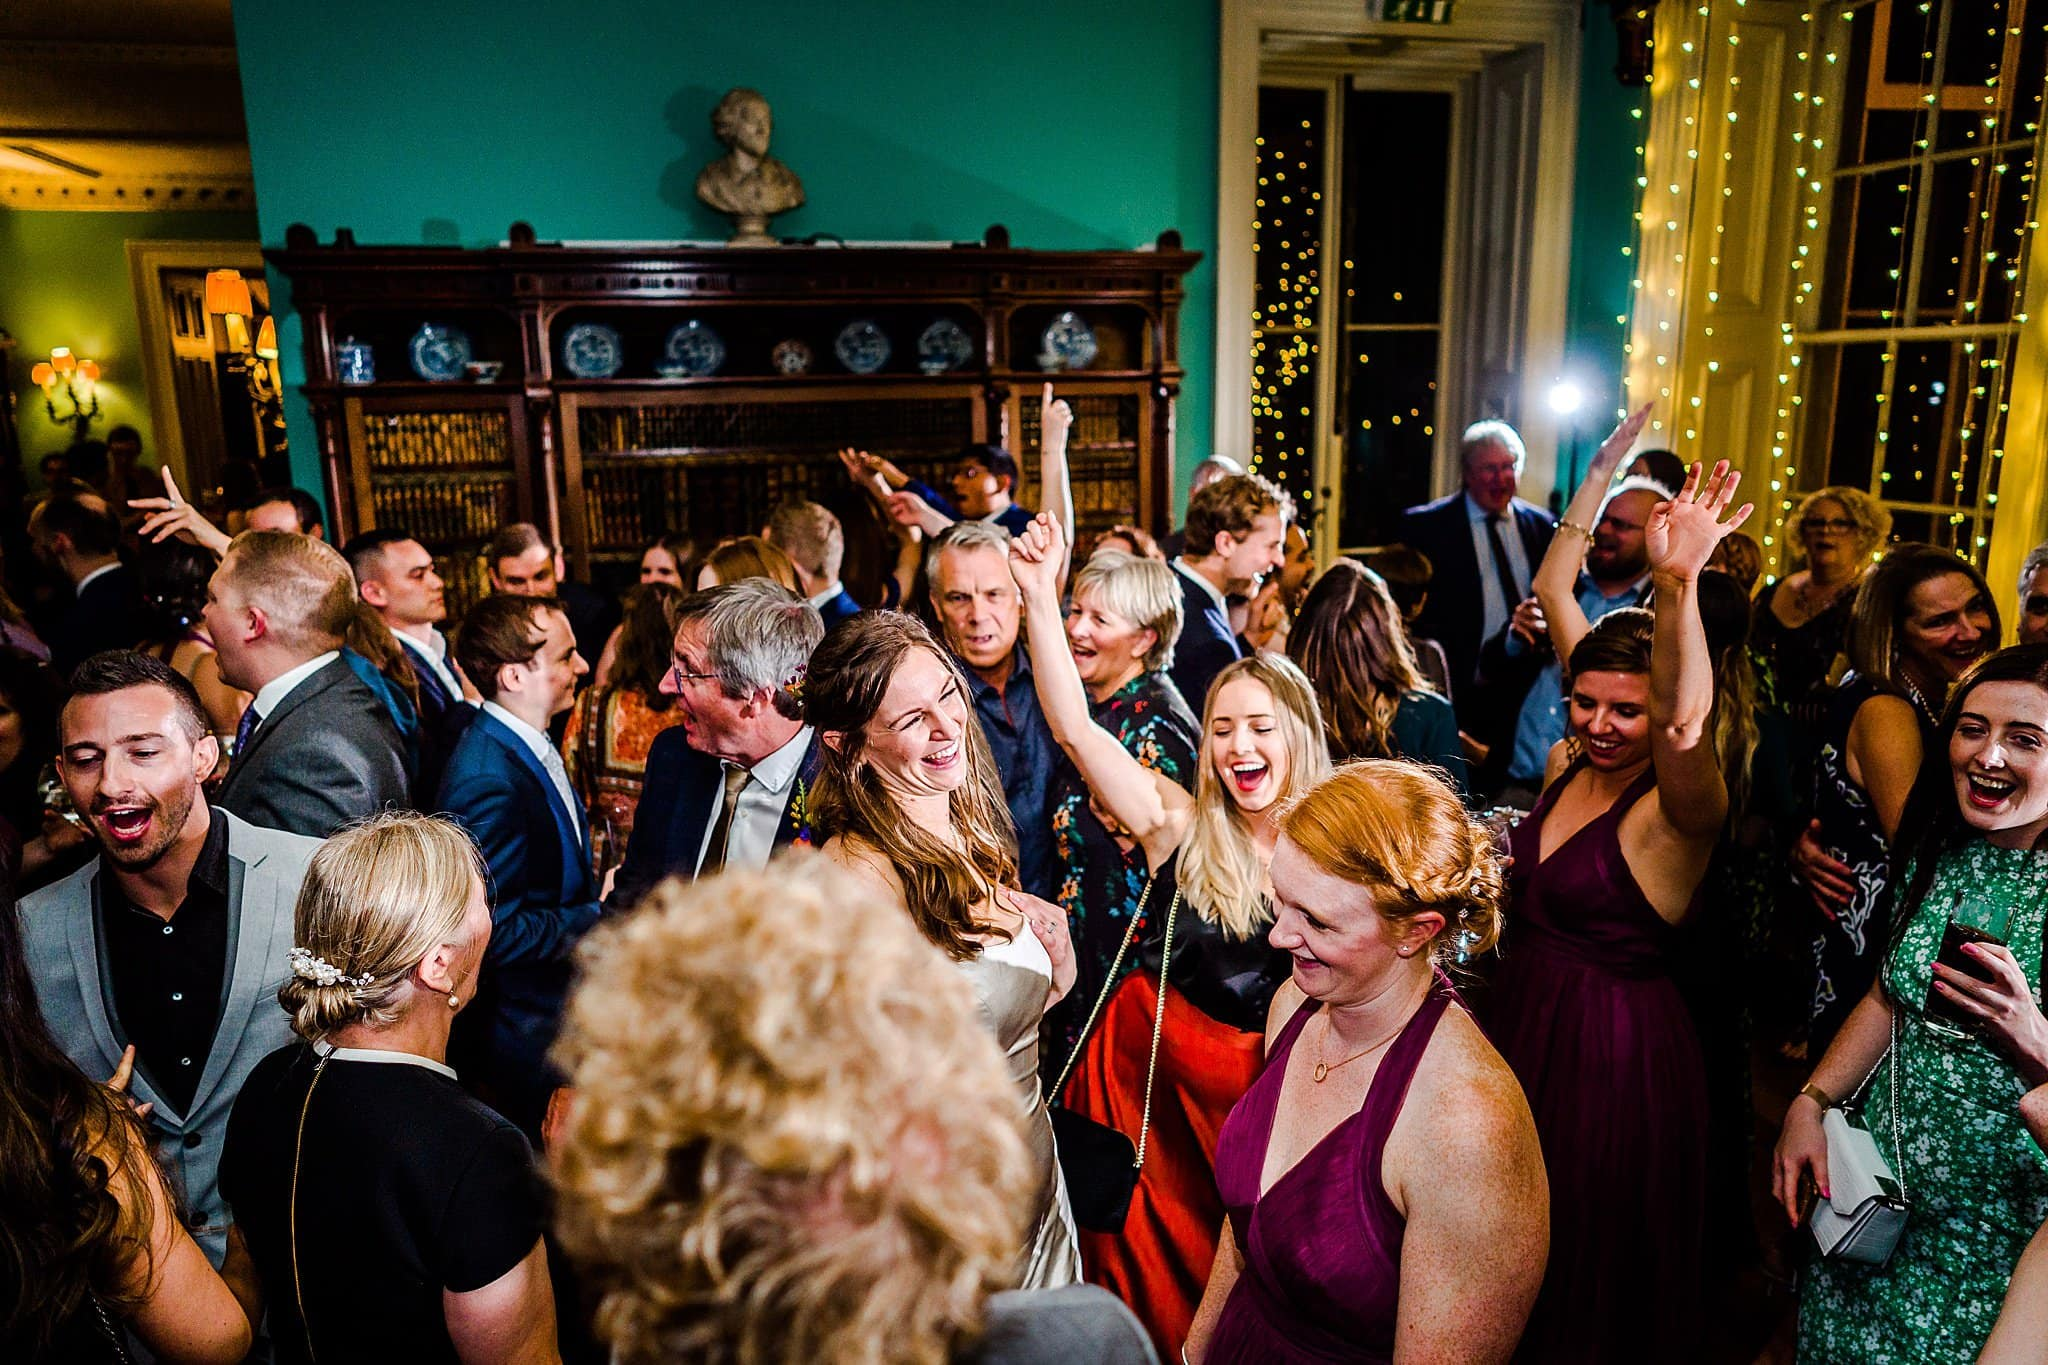 The dancefloor is full of the wedding guests of Sally & Ben at Prestwold Hall